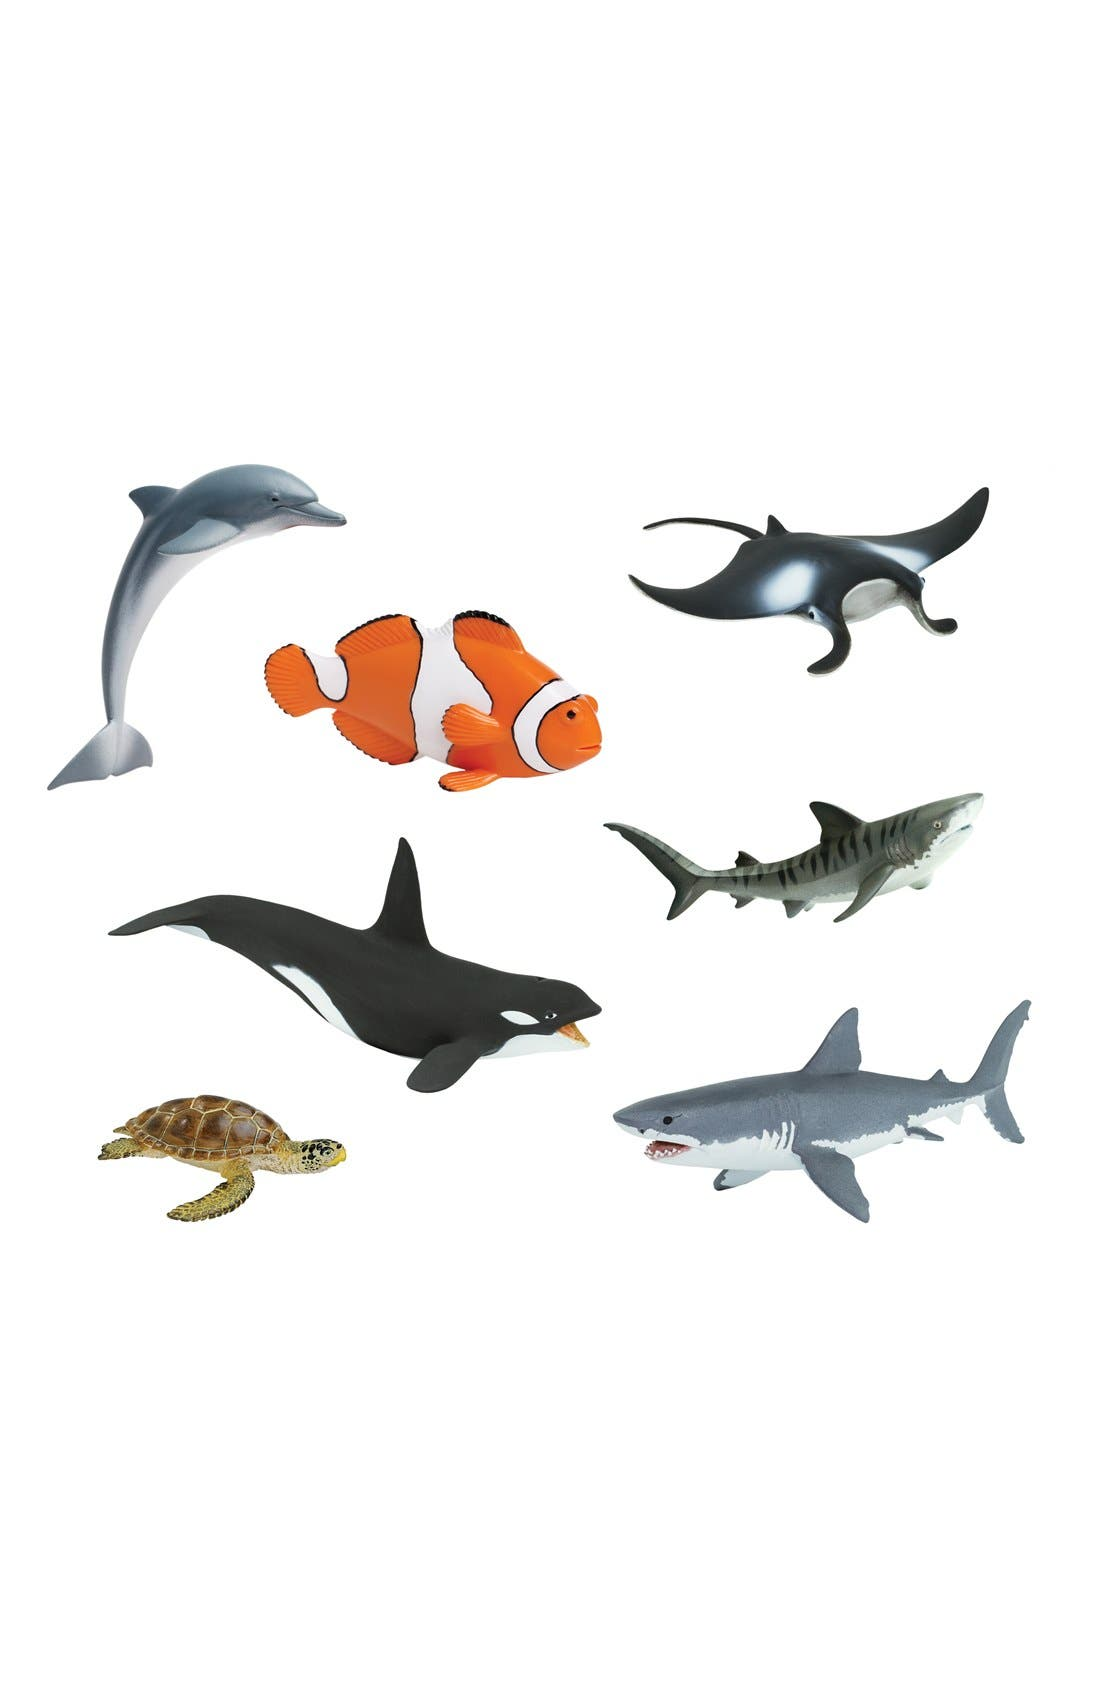 Safari Ltd. Sea Life Figurines (Set of 7)